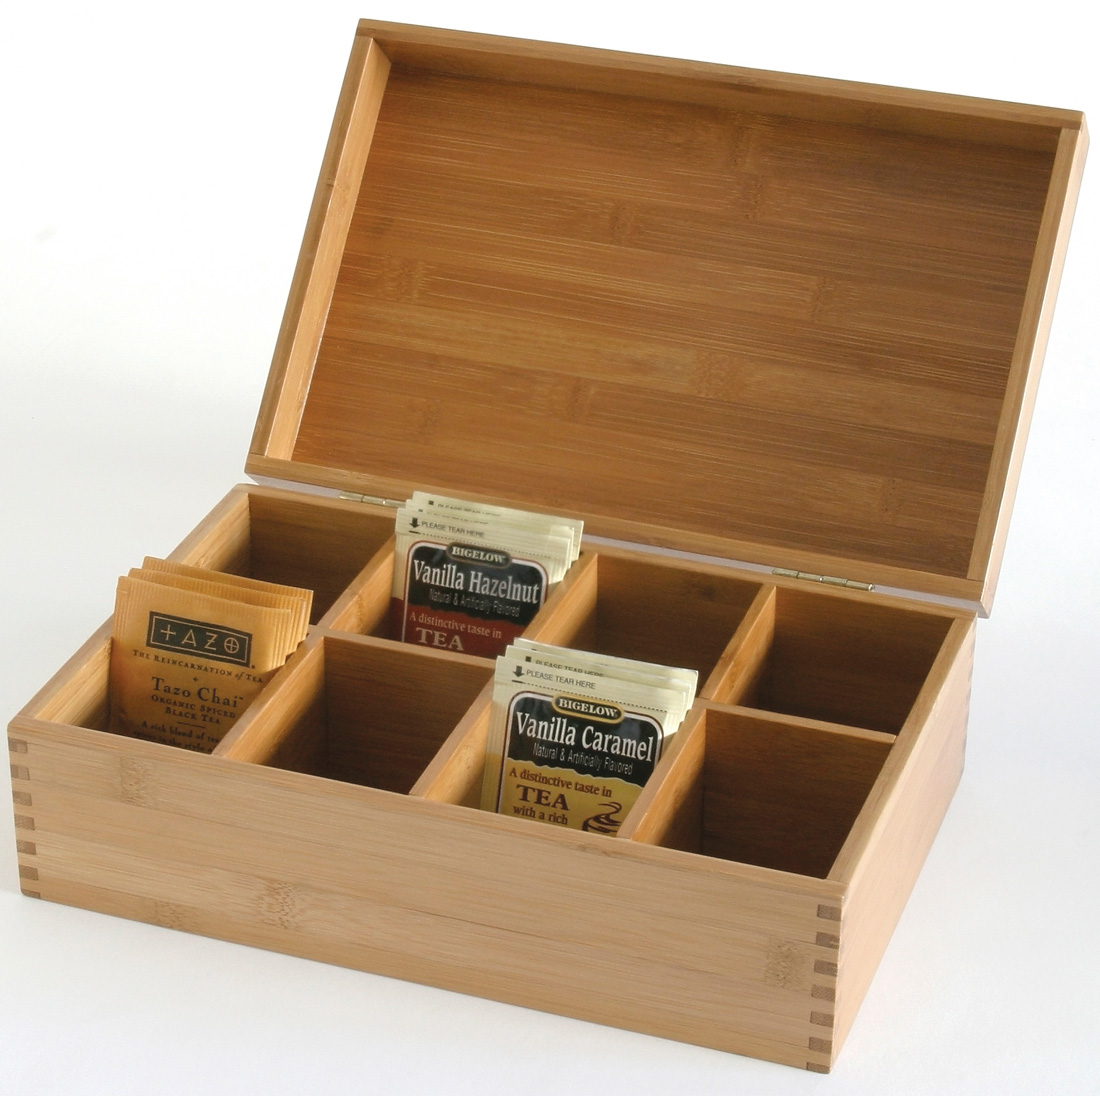 Shown when used as tea box